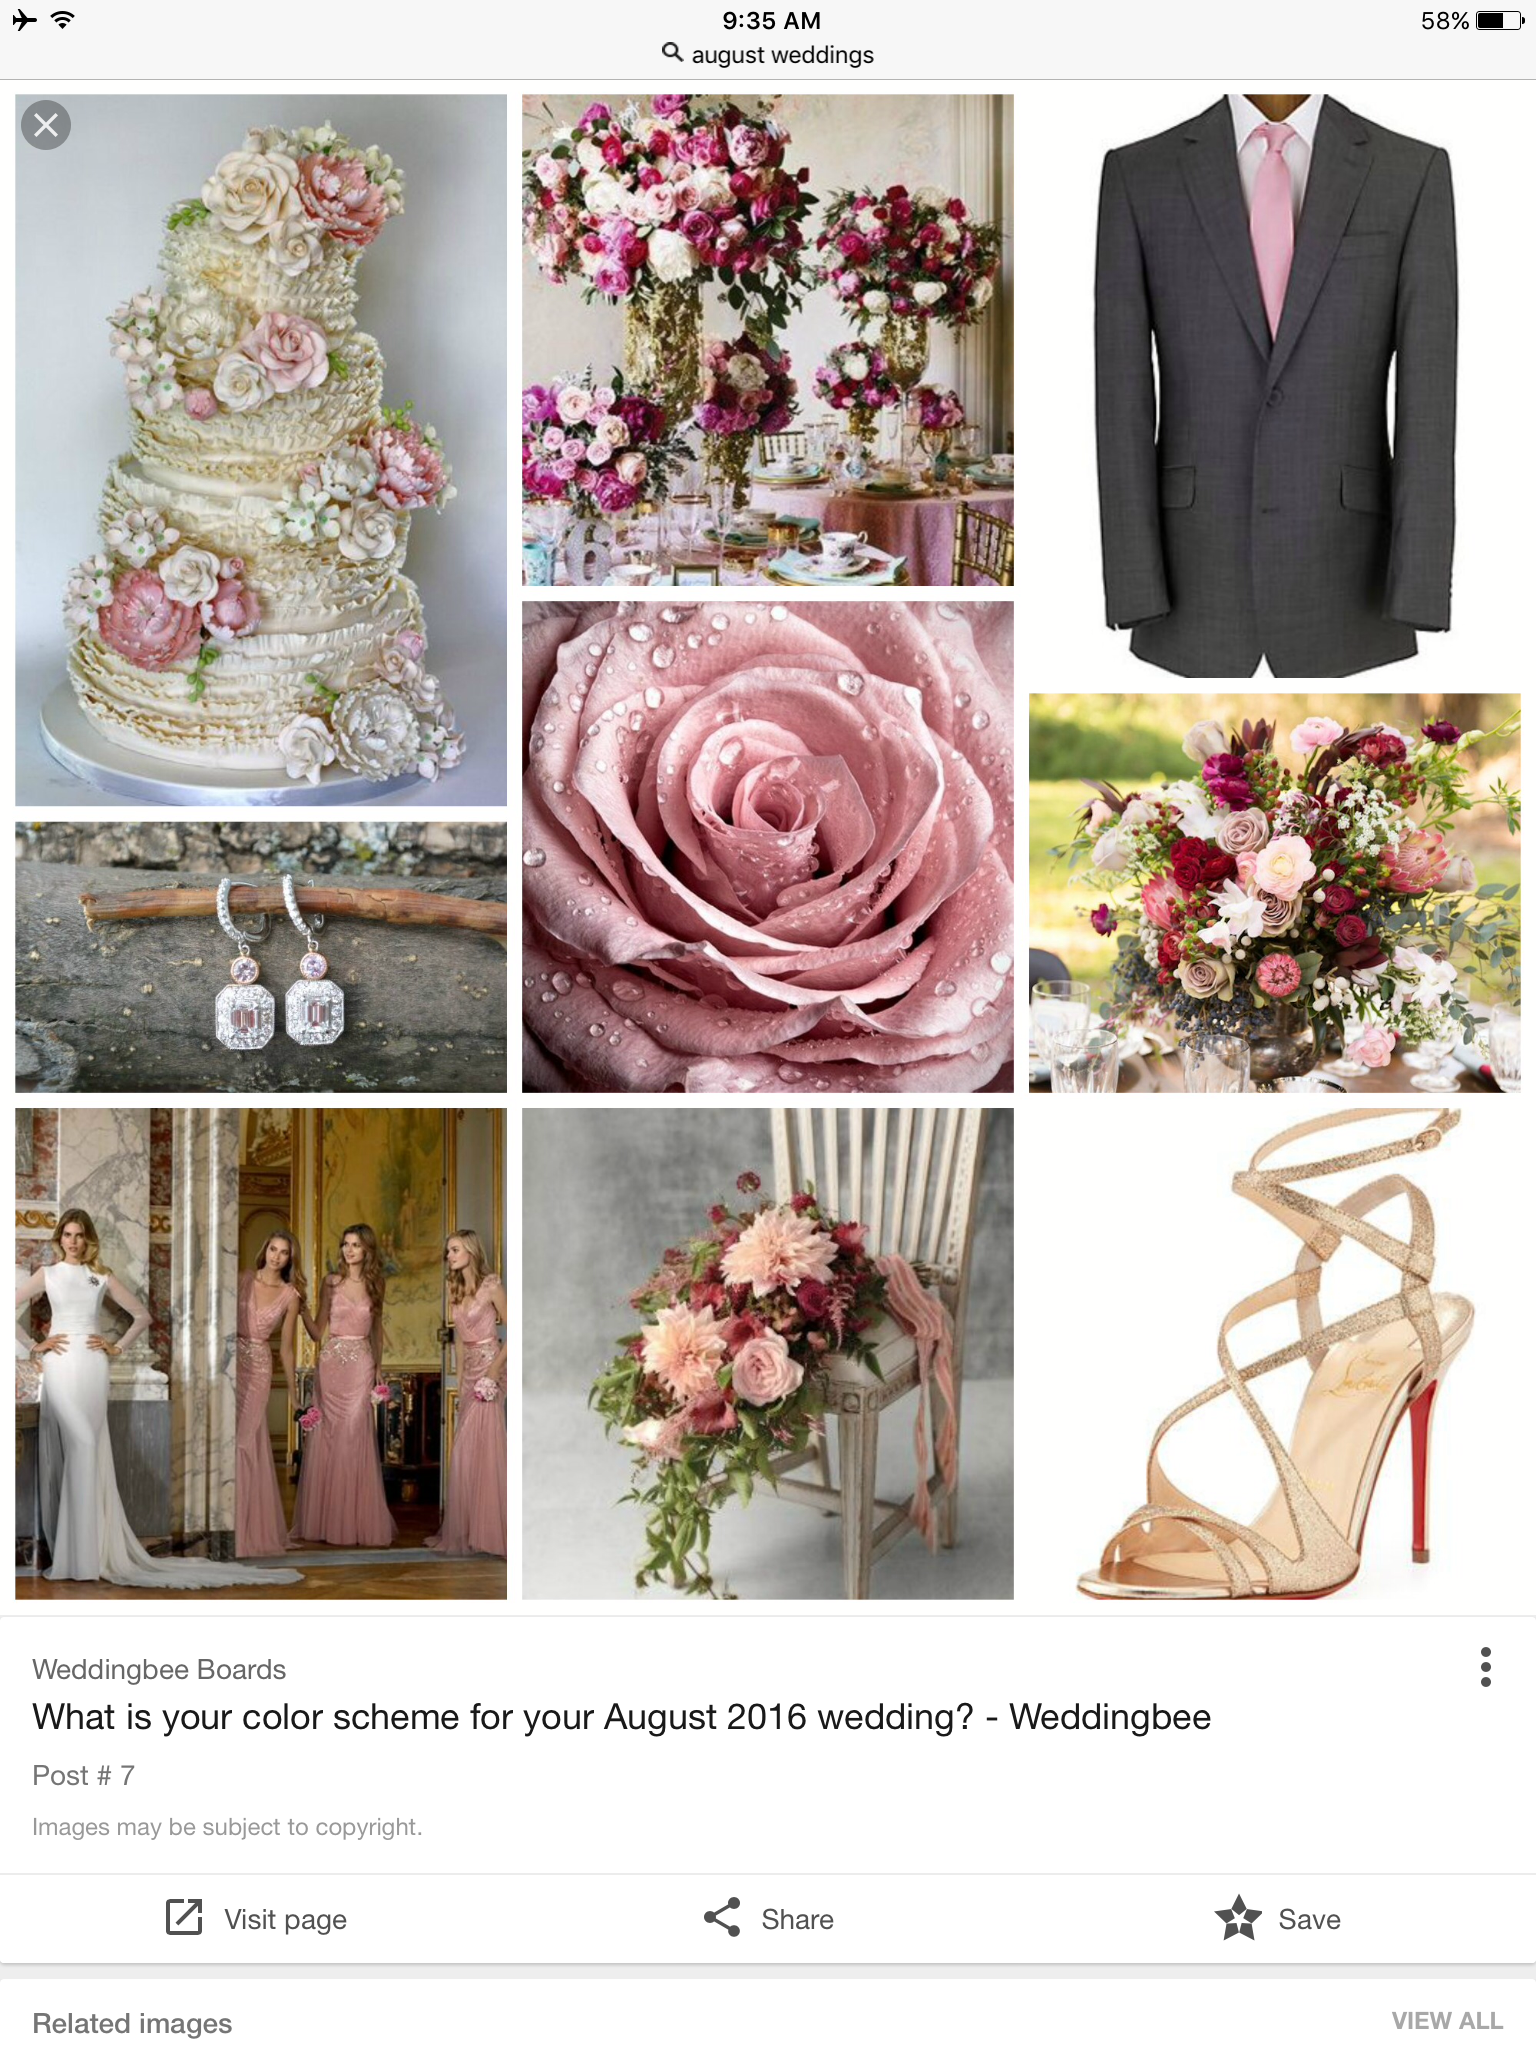 What Is Your Color Scheme For Your August 2016 Wedding